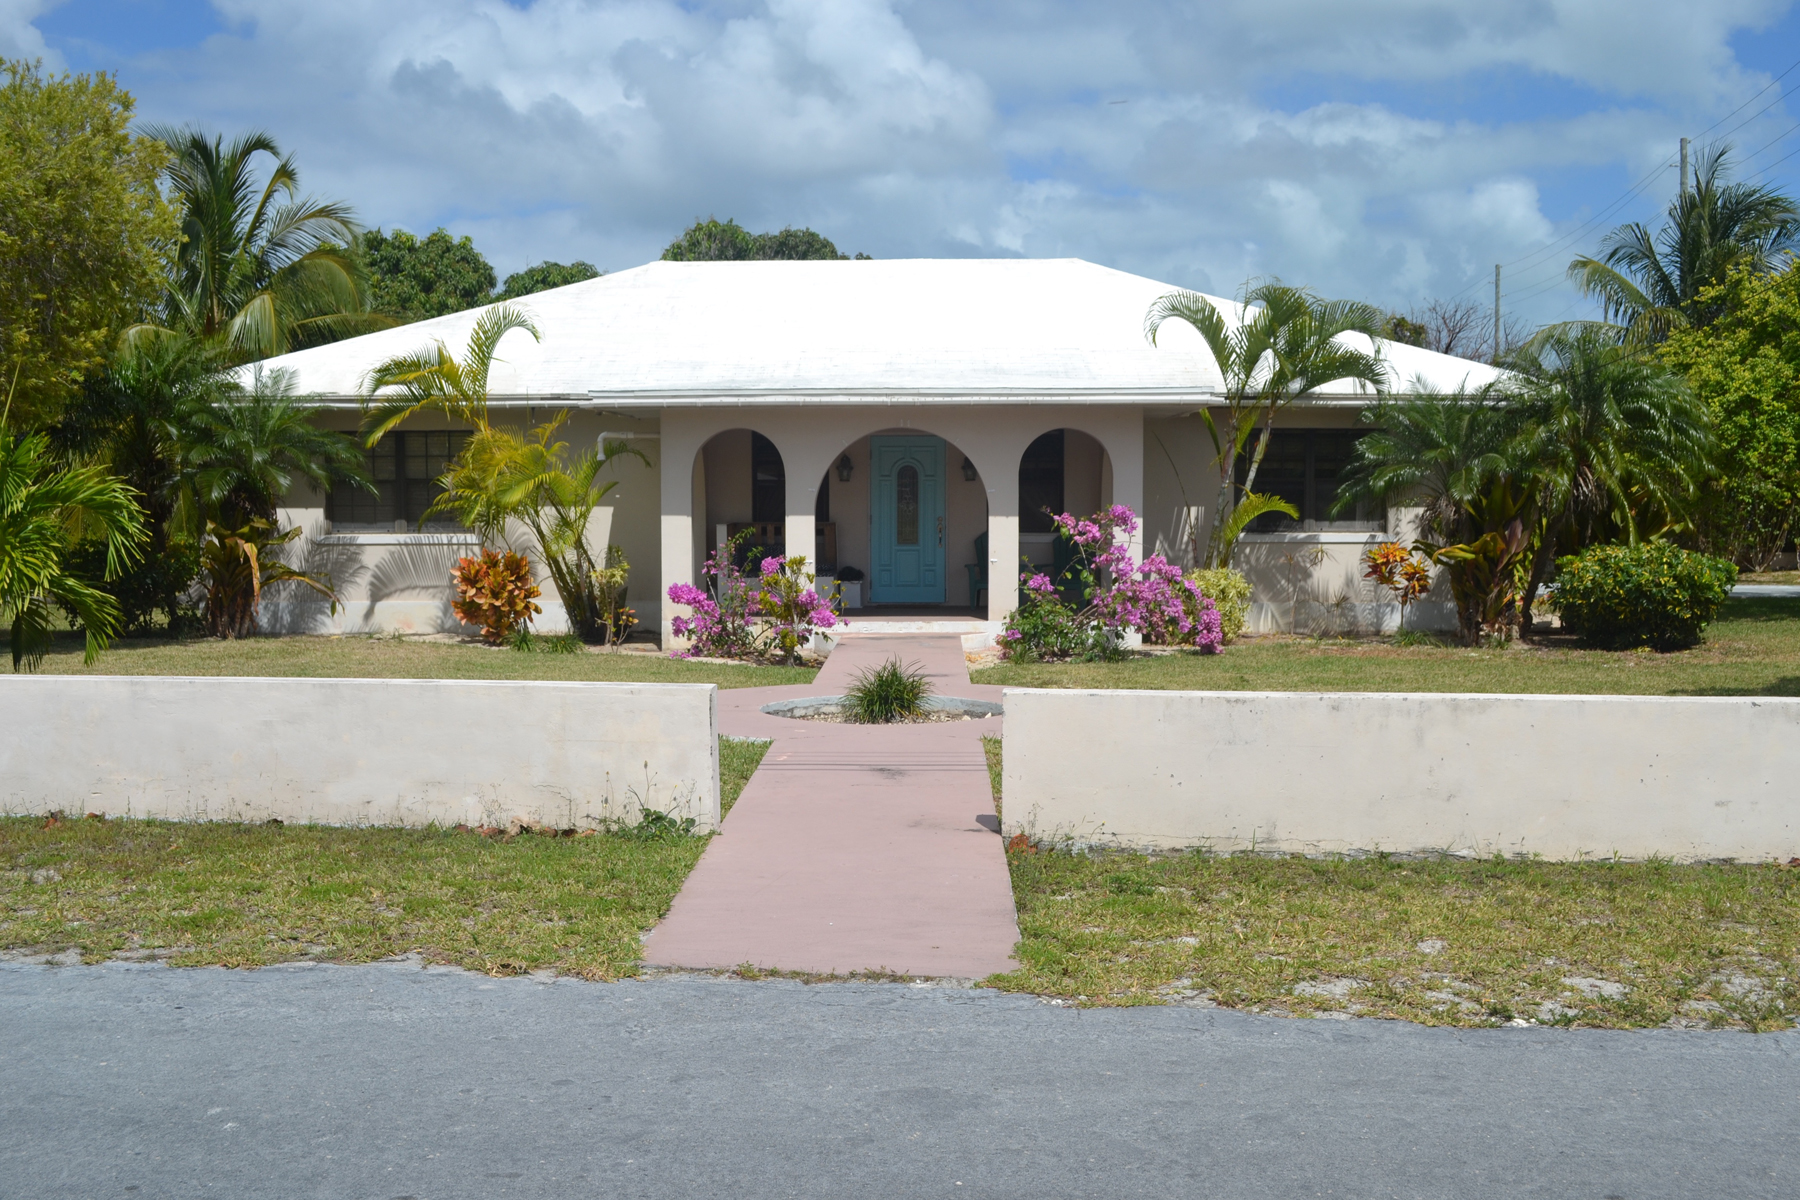 Single Family Home for Sale at Recently Refurbished Home with Deeded Beach Access Vivian Pinder Road Spanish Wells, Eleuthera 0 Bahamas